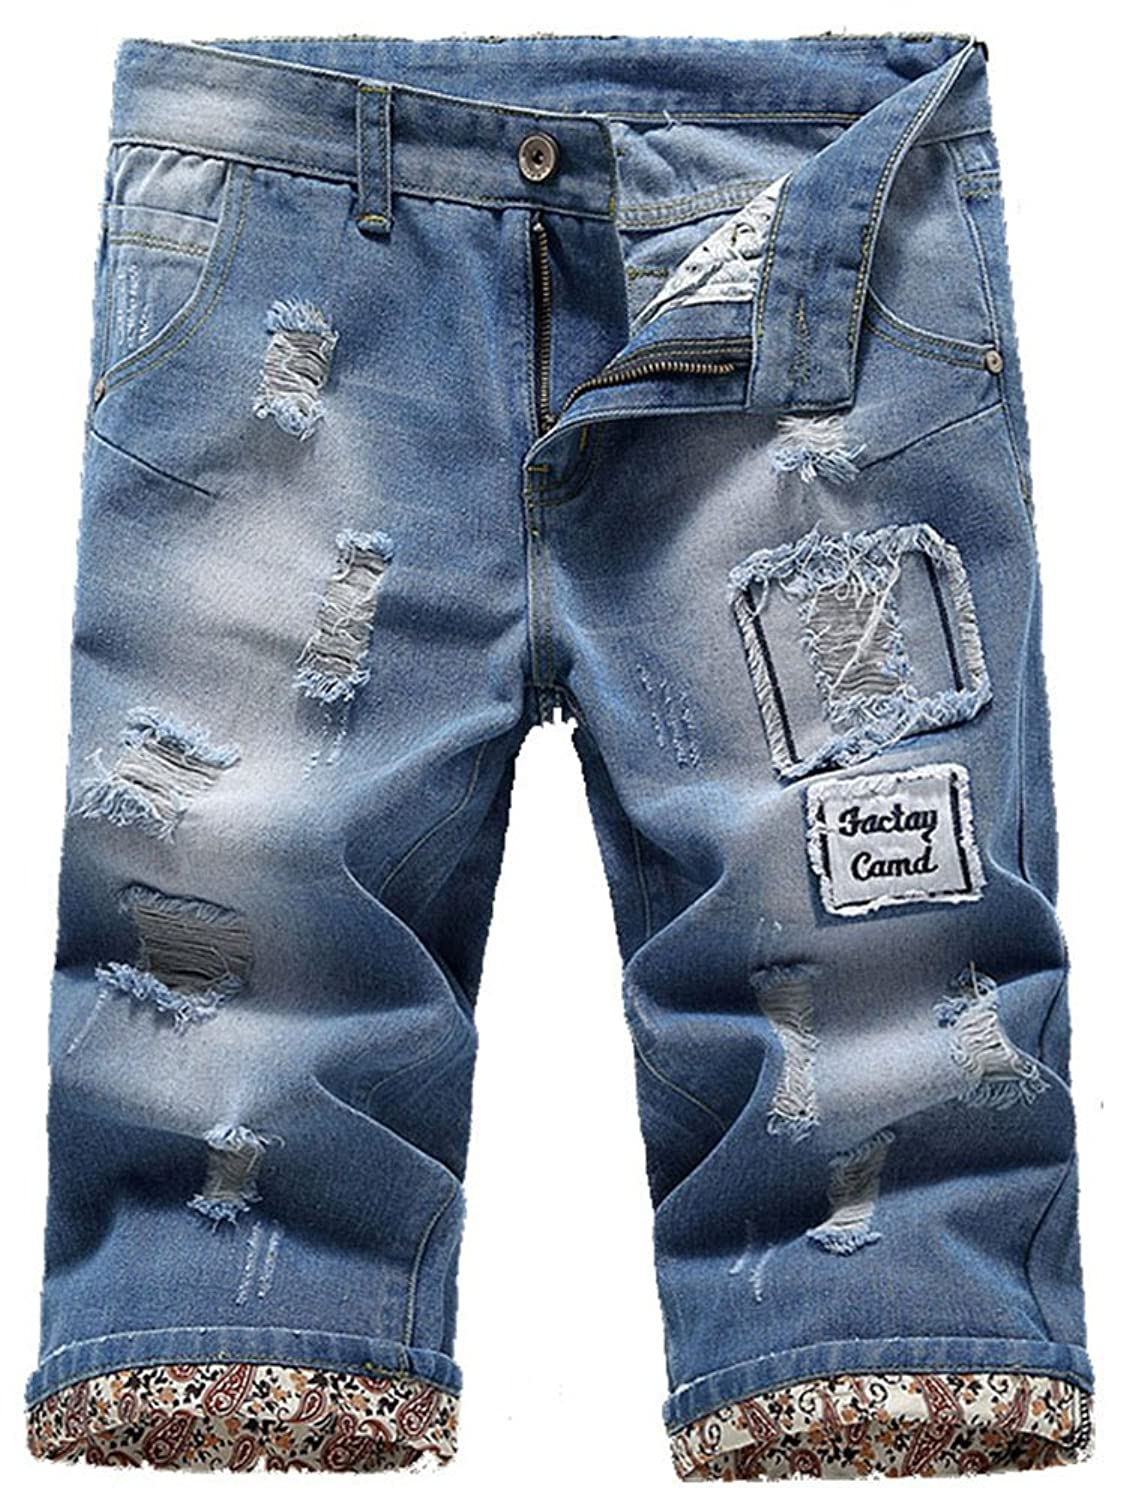 Allonly Men's Fashion Casual Destroyed Ripped Slim Fit Denim Shorts Jean Short With Broken Holes And Patches